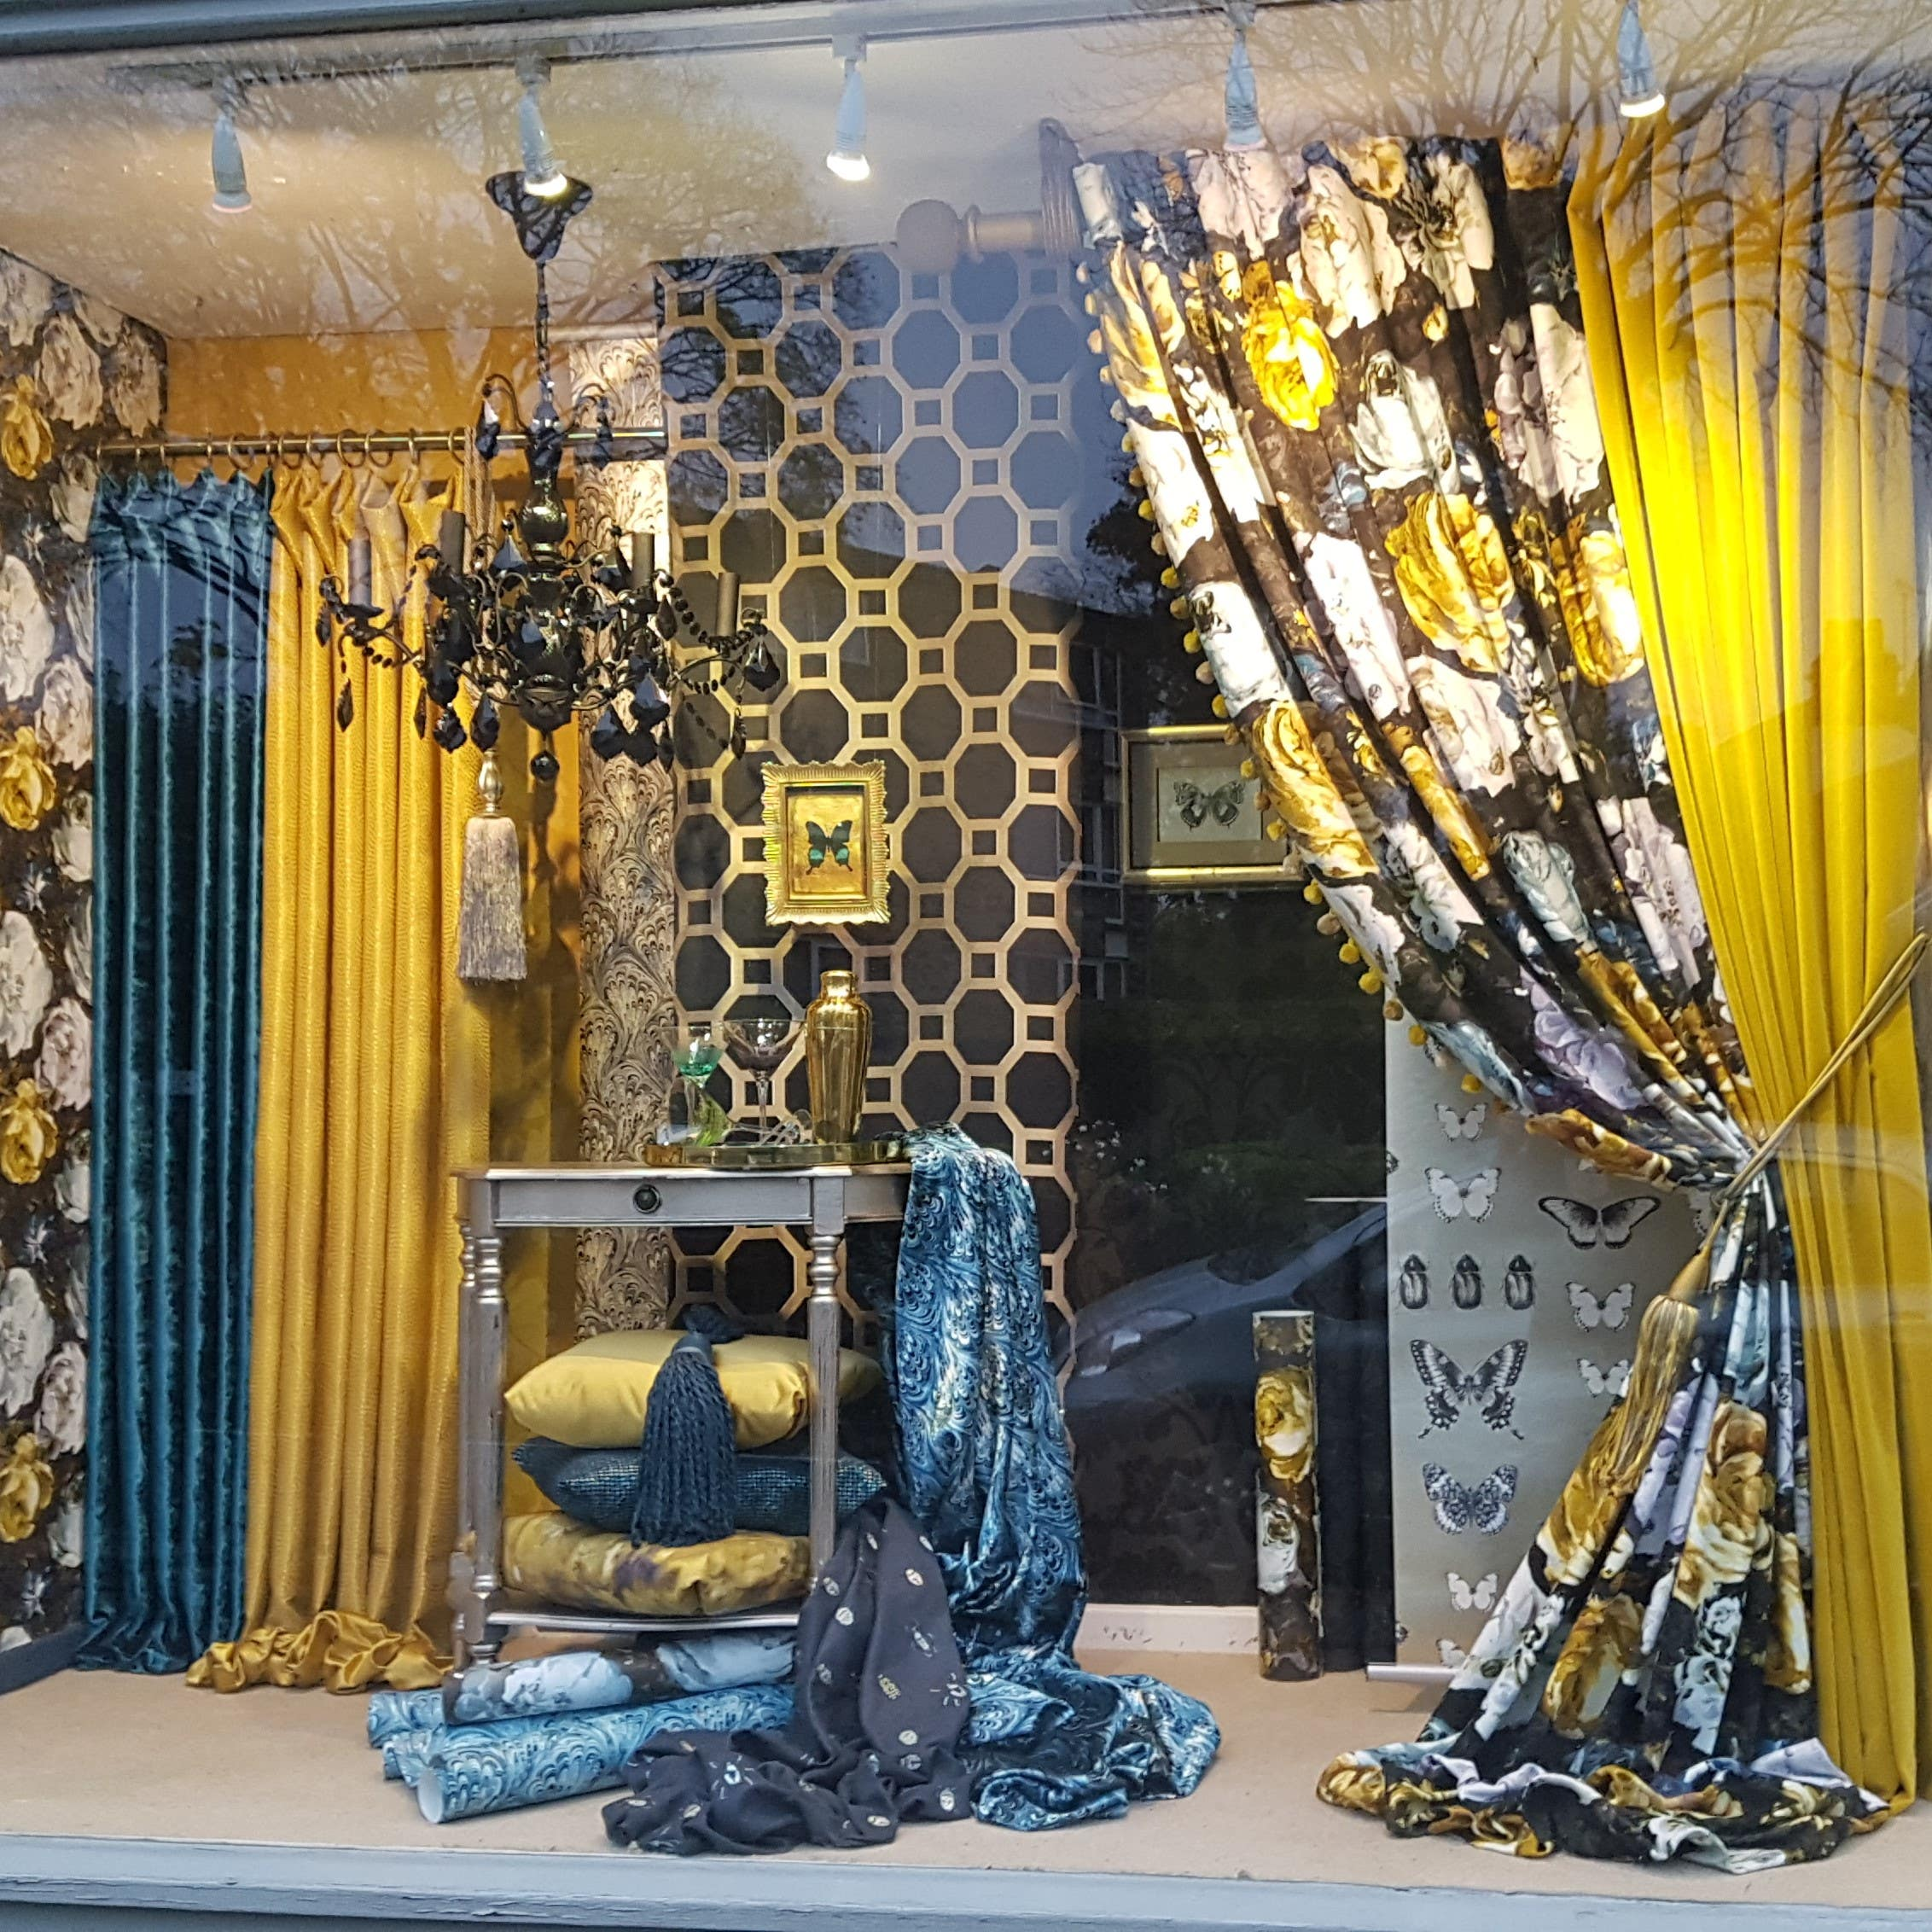 Interior furnishing display created from fabrics and wallpapers